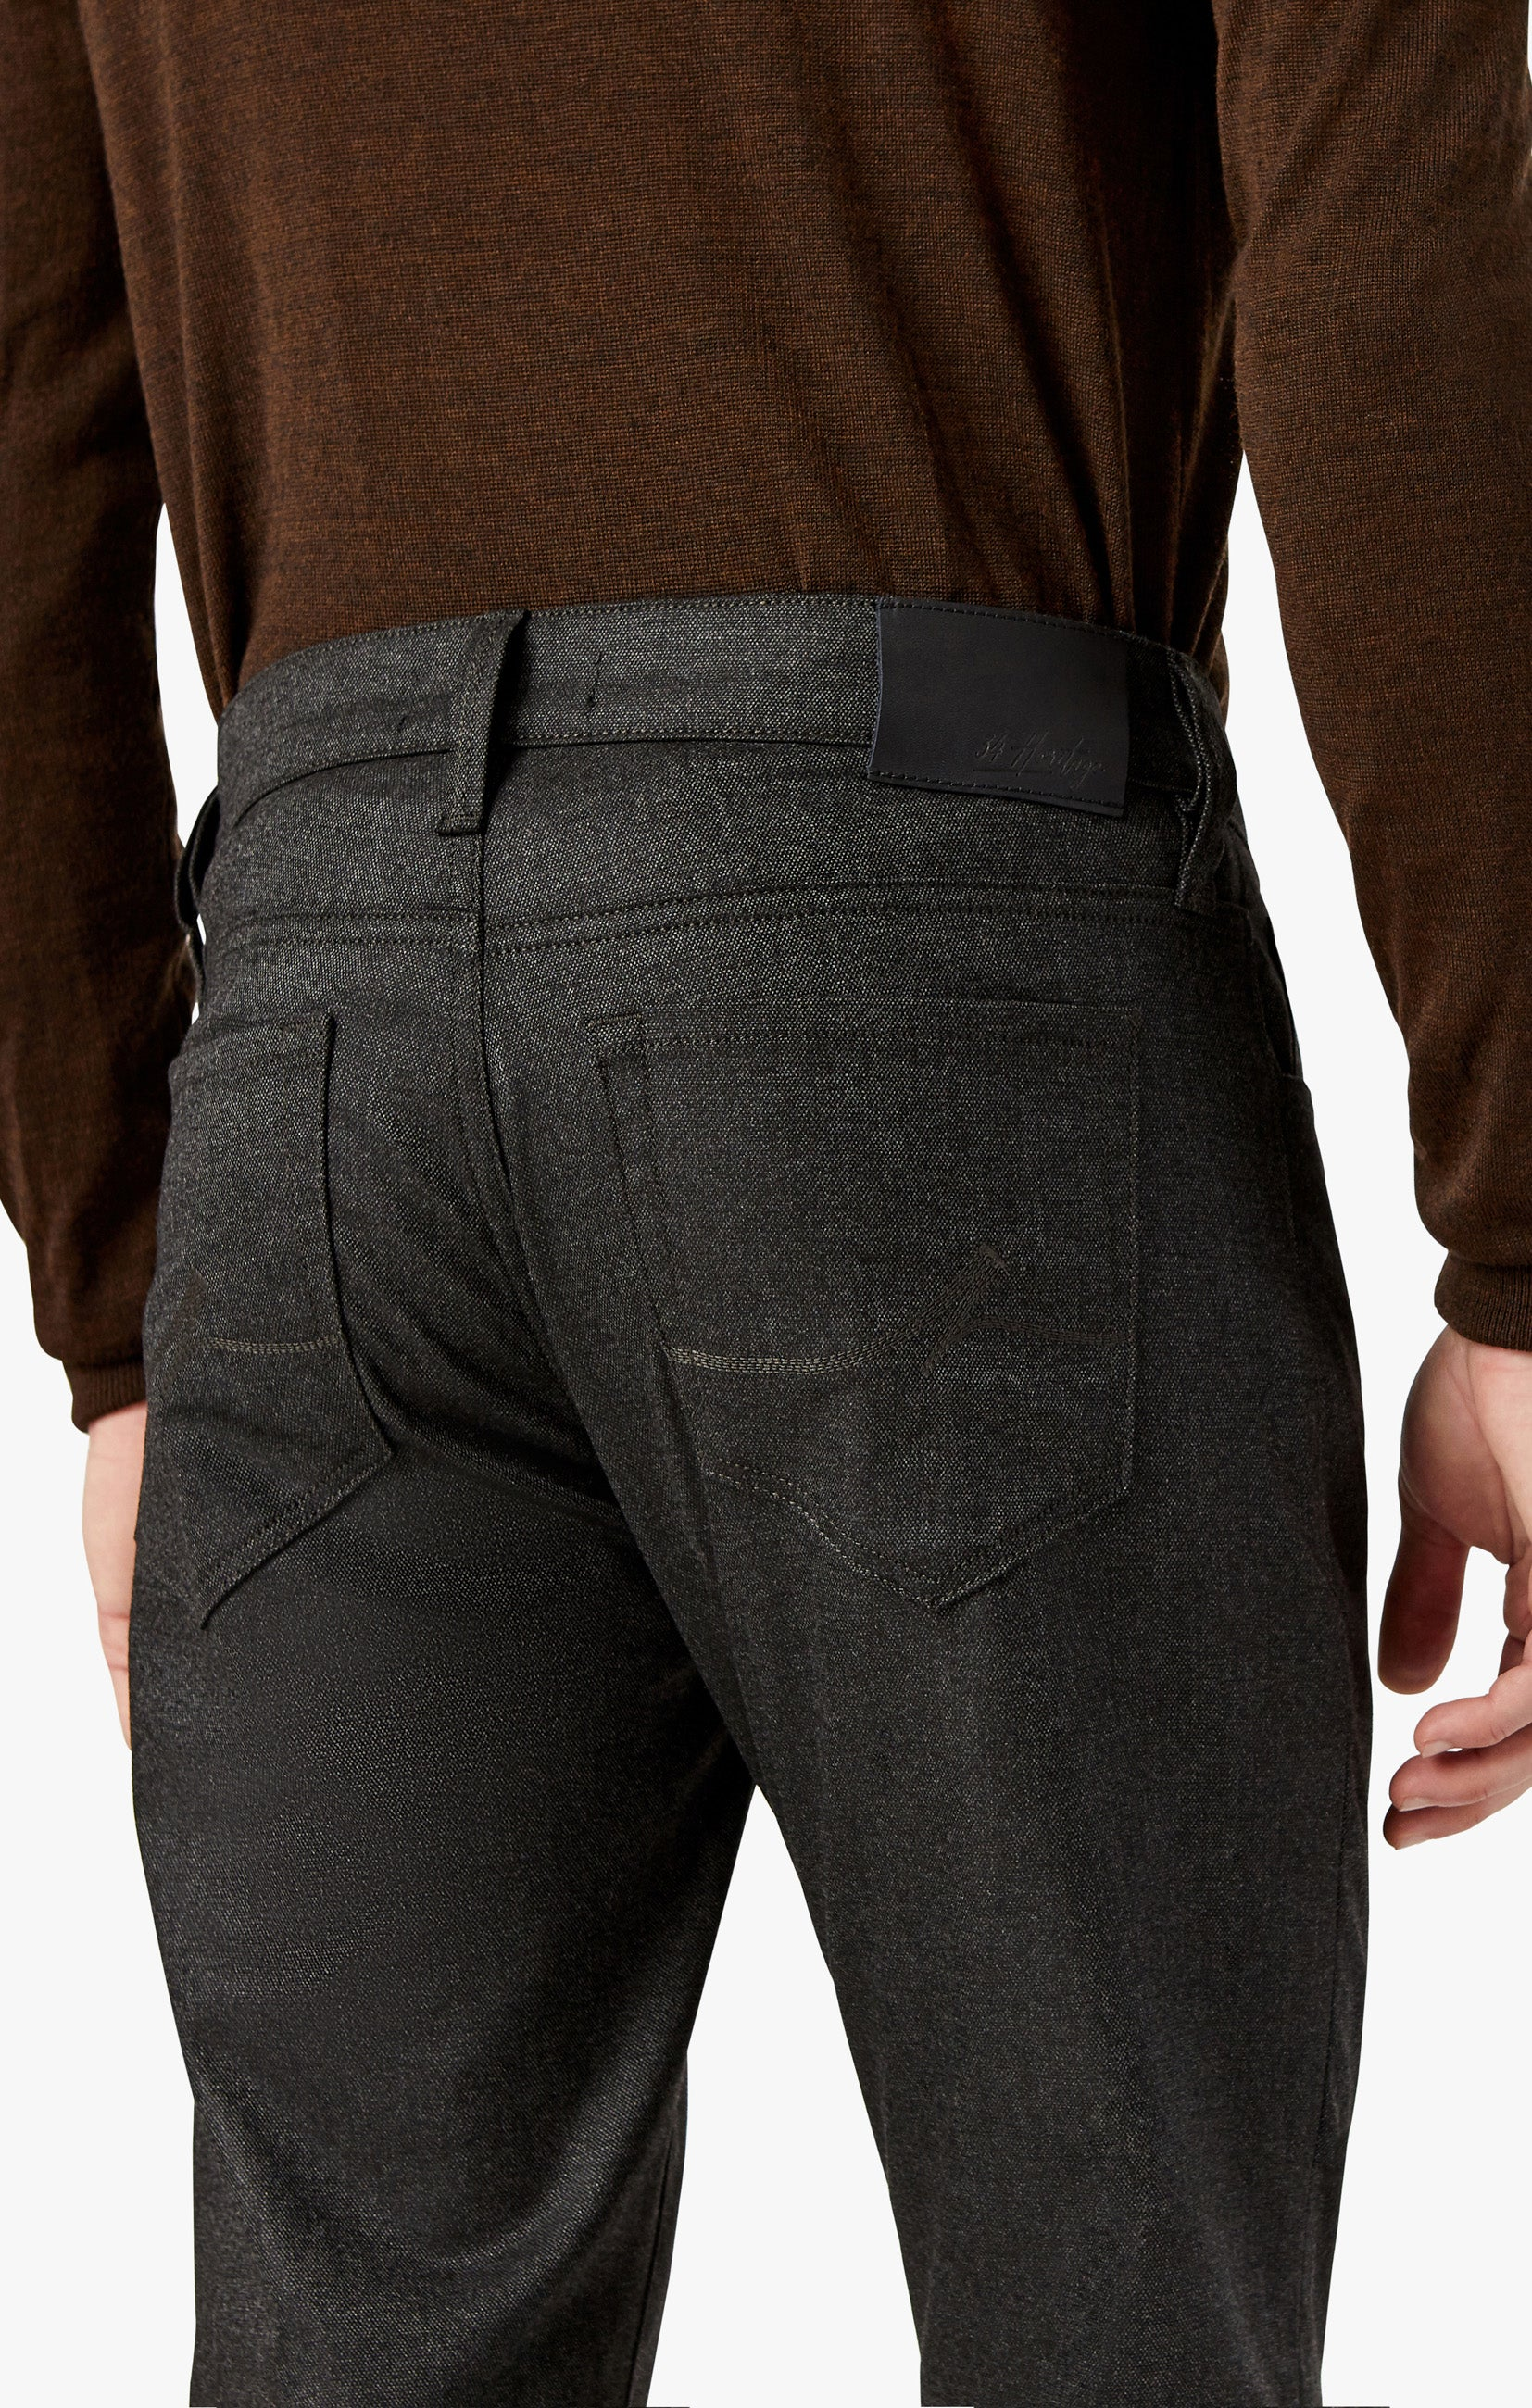 Naples Straight Leg Chino Pants in Smoke Feather Tweed Image 6